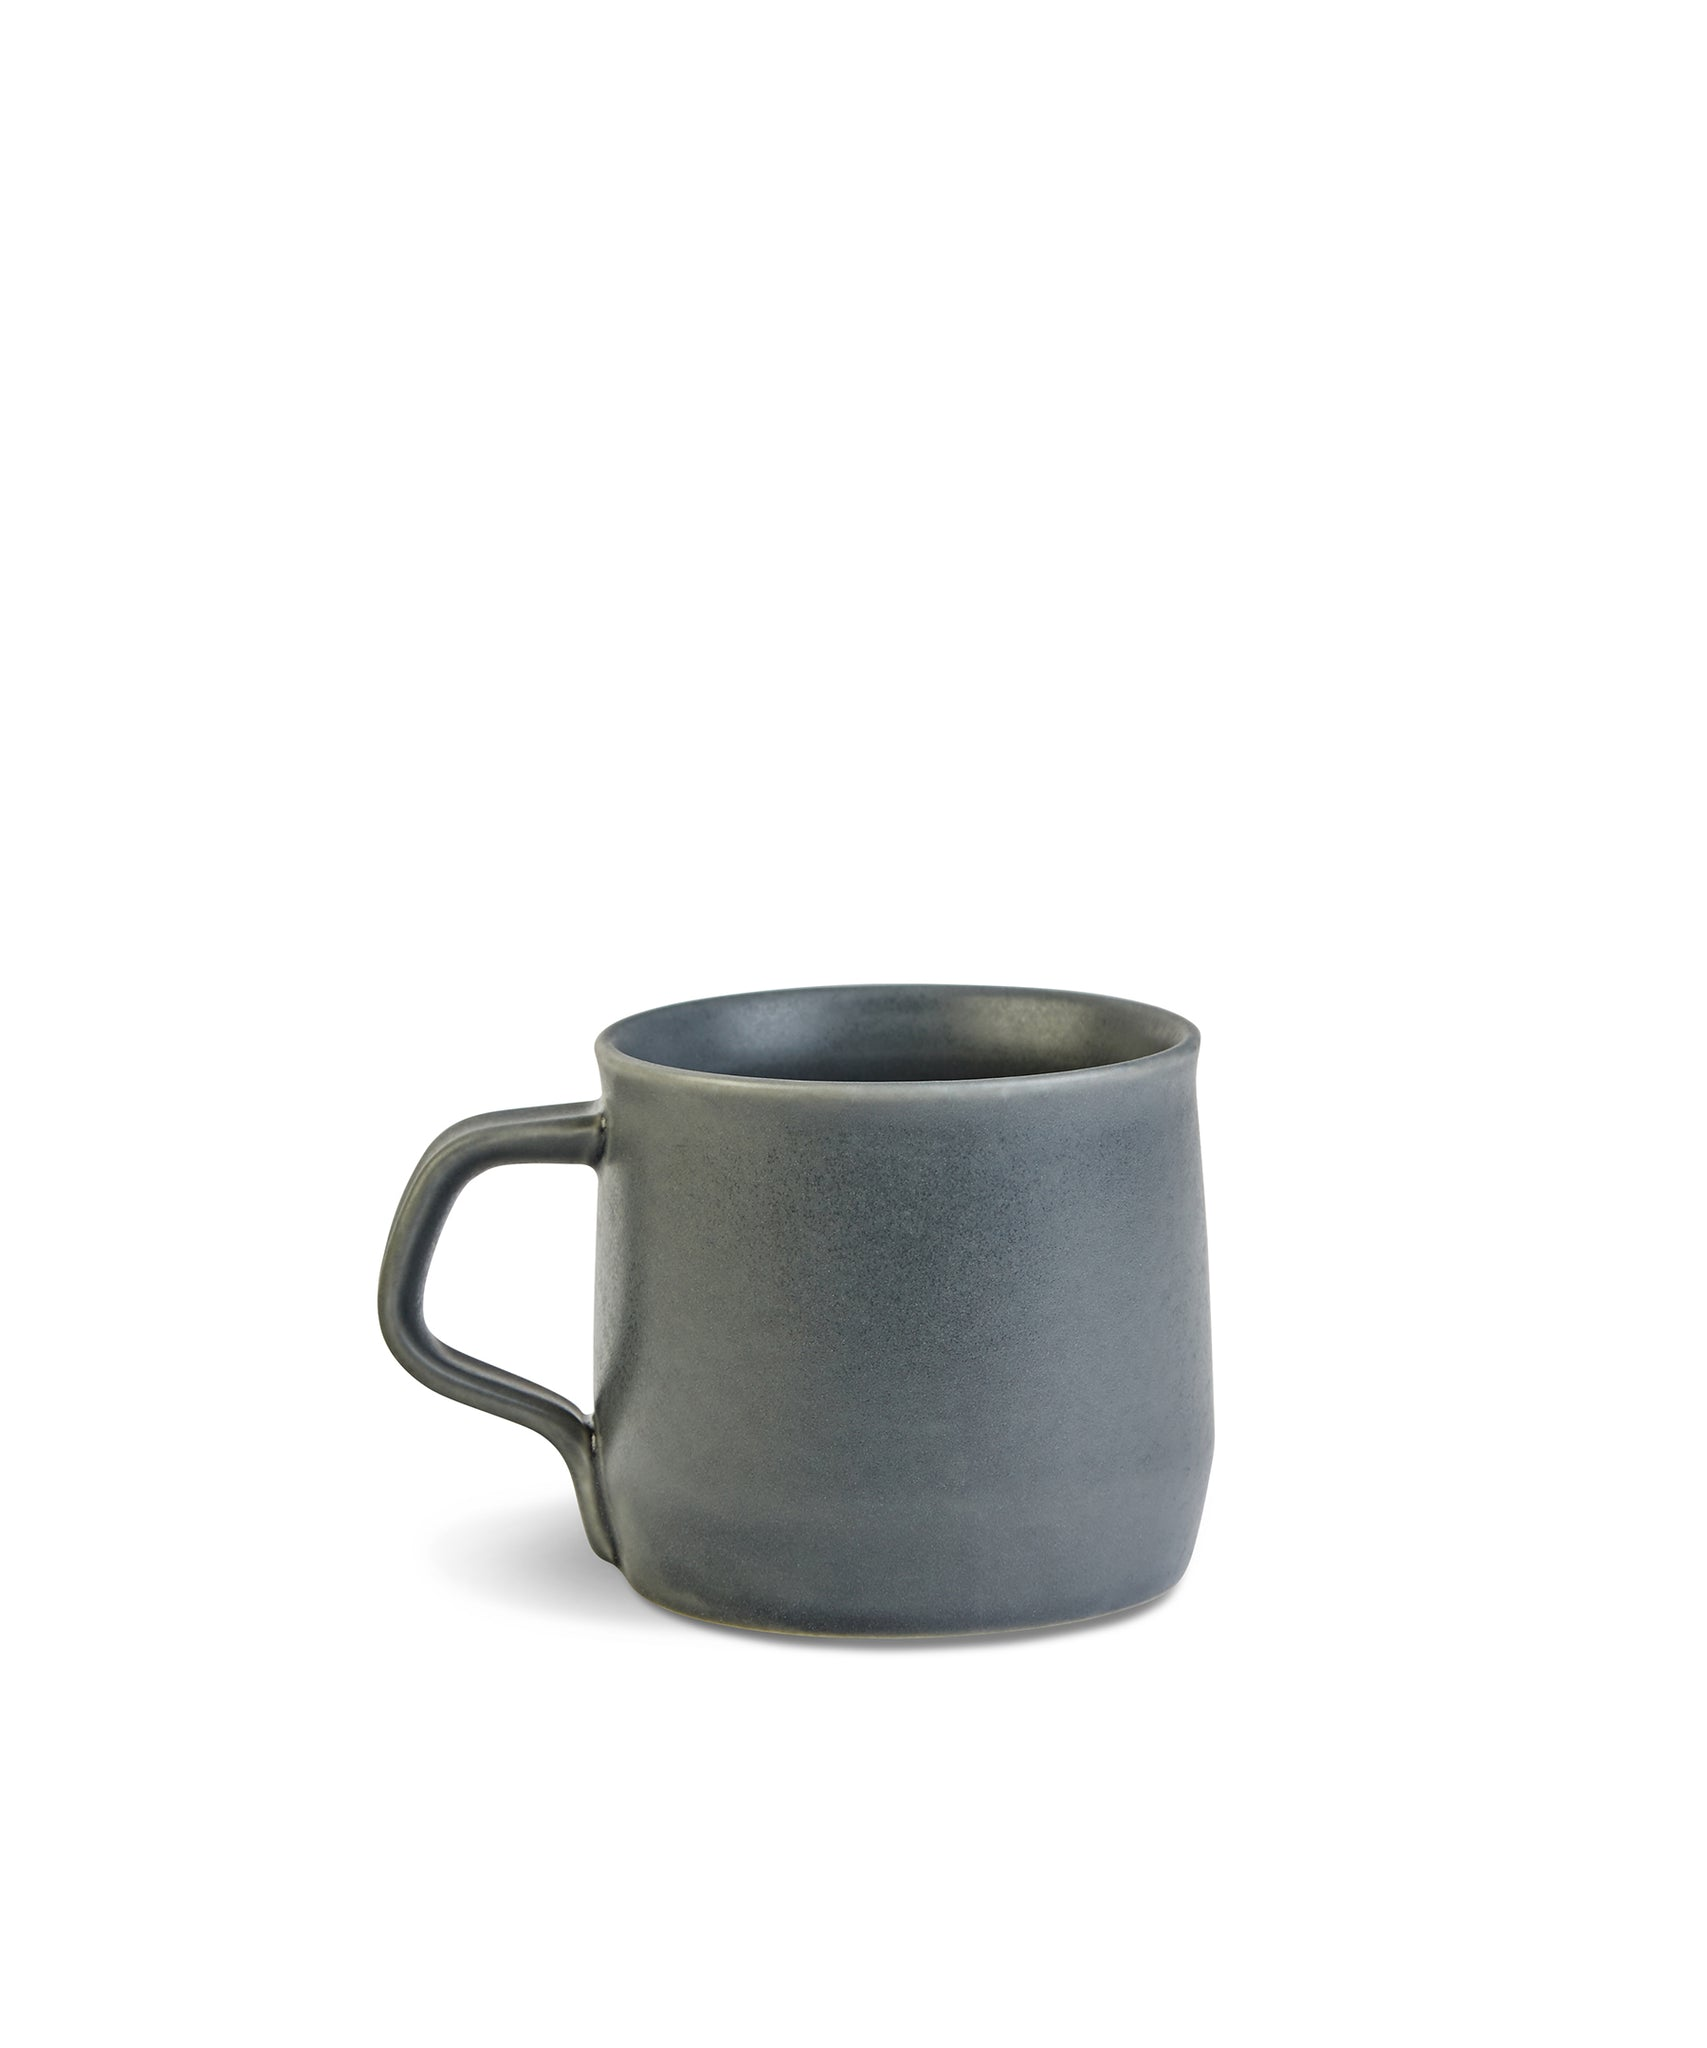 Fog Mug 270ml (Dark Grey) by Kinto